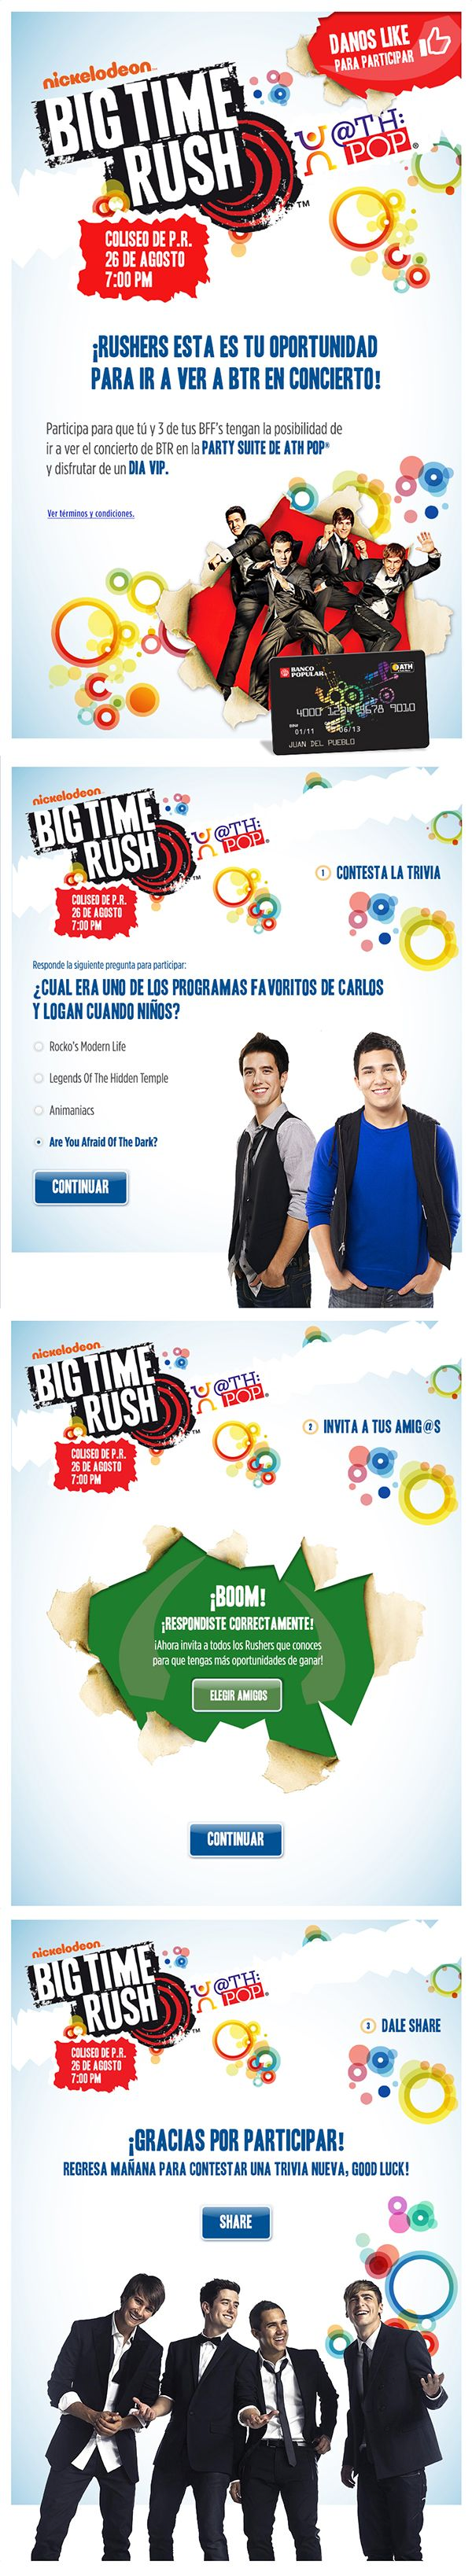 Project: Facebook App - Client: ATHPop from Banco Popular de Puerto Rico, Big Time Rush and Nickelodeon - Country: Puerto Rico / Works by KDS, Buenos Aires, Argentina / Find us in www.kds.com.ar or Facebook/KDSARG and Twitter/KDSARG / Tags: #facebook #app #social #popular #bppr #btr #nickelodeon #athpop #rock #grupo #banda #band